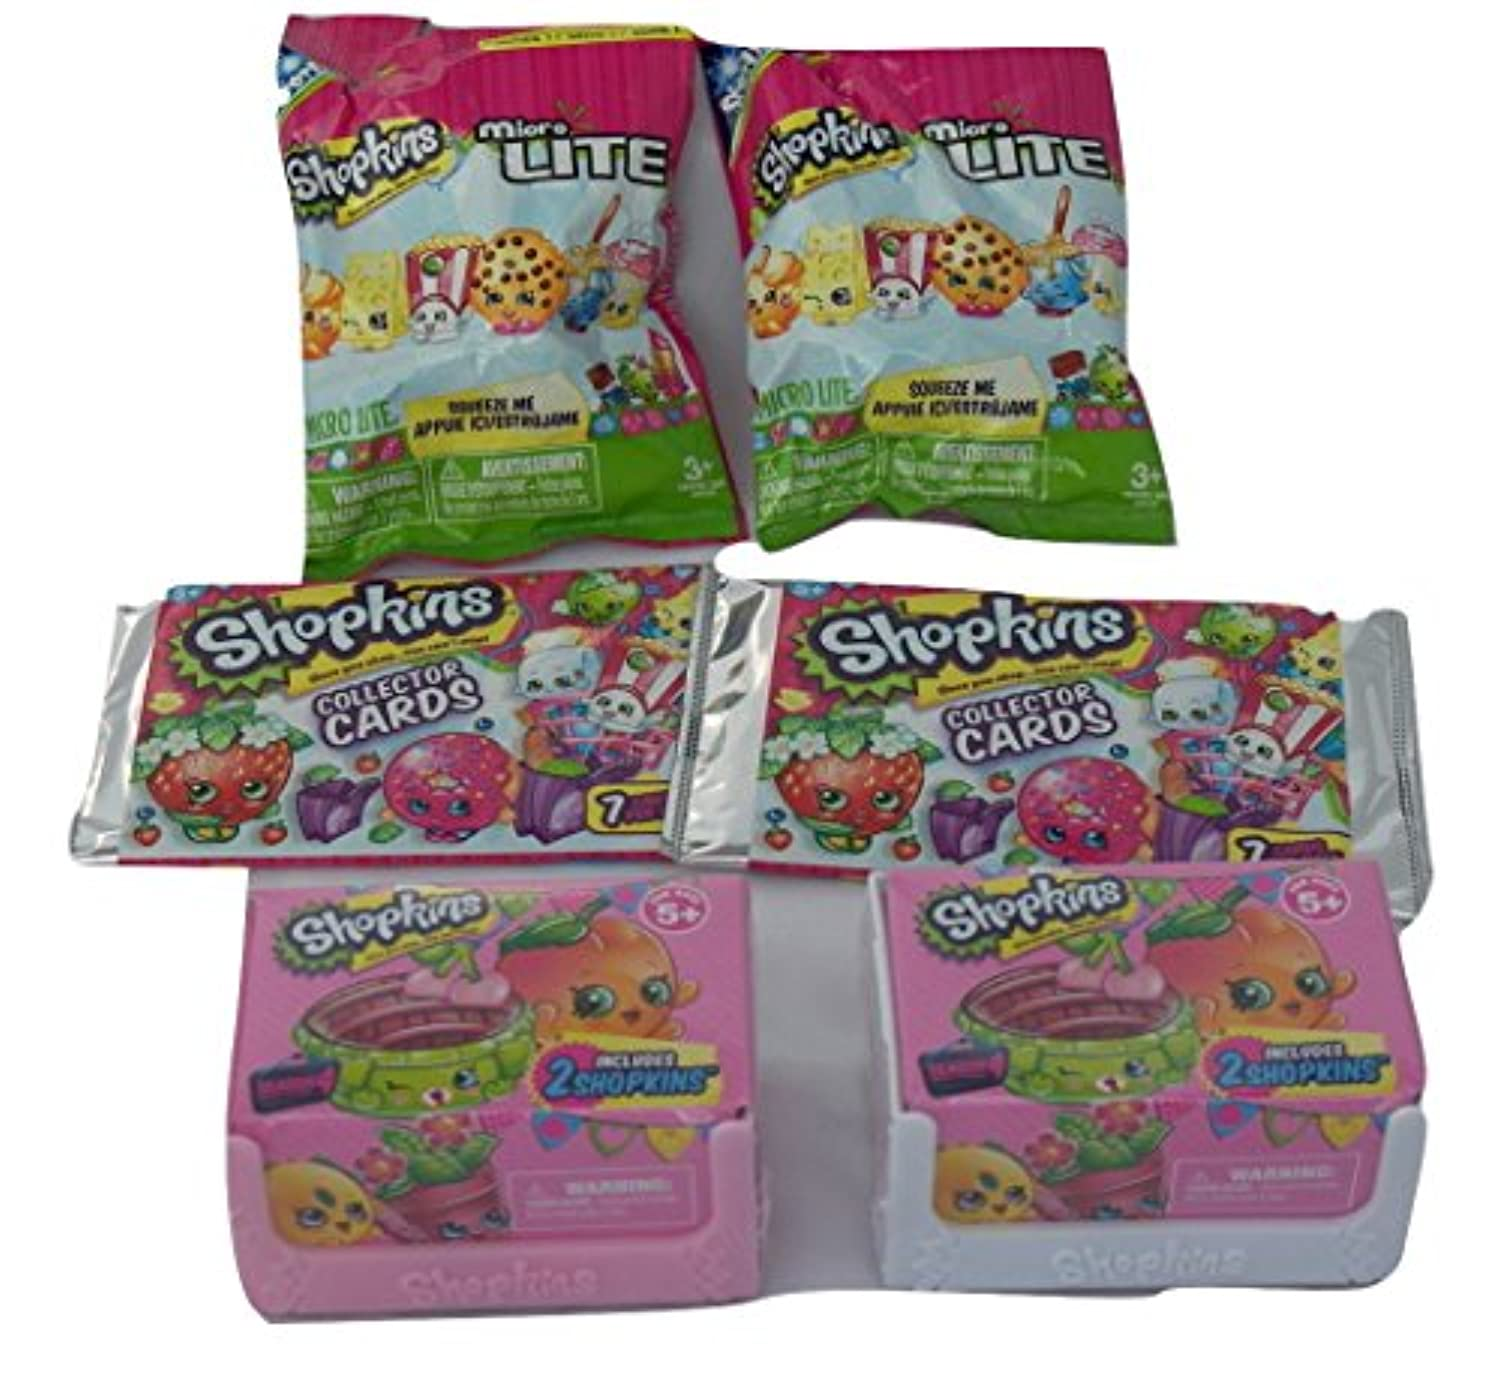 Shopkins Series 4 Petkins (2) 2 Packs , Micro Lite Series 1 (2) Packs of 1, Collector Cards (2) 7 Packs, Bundle ...